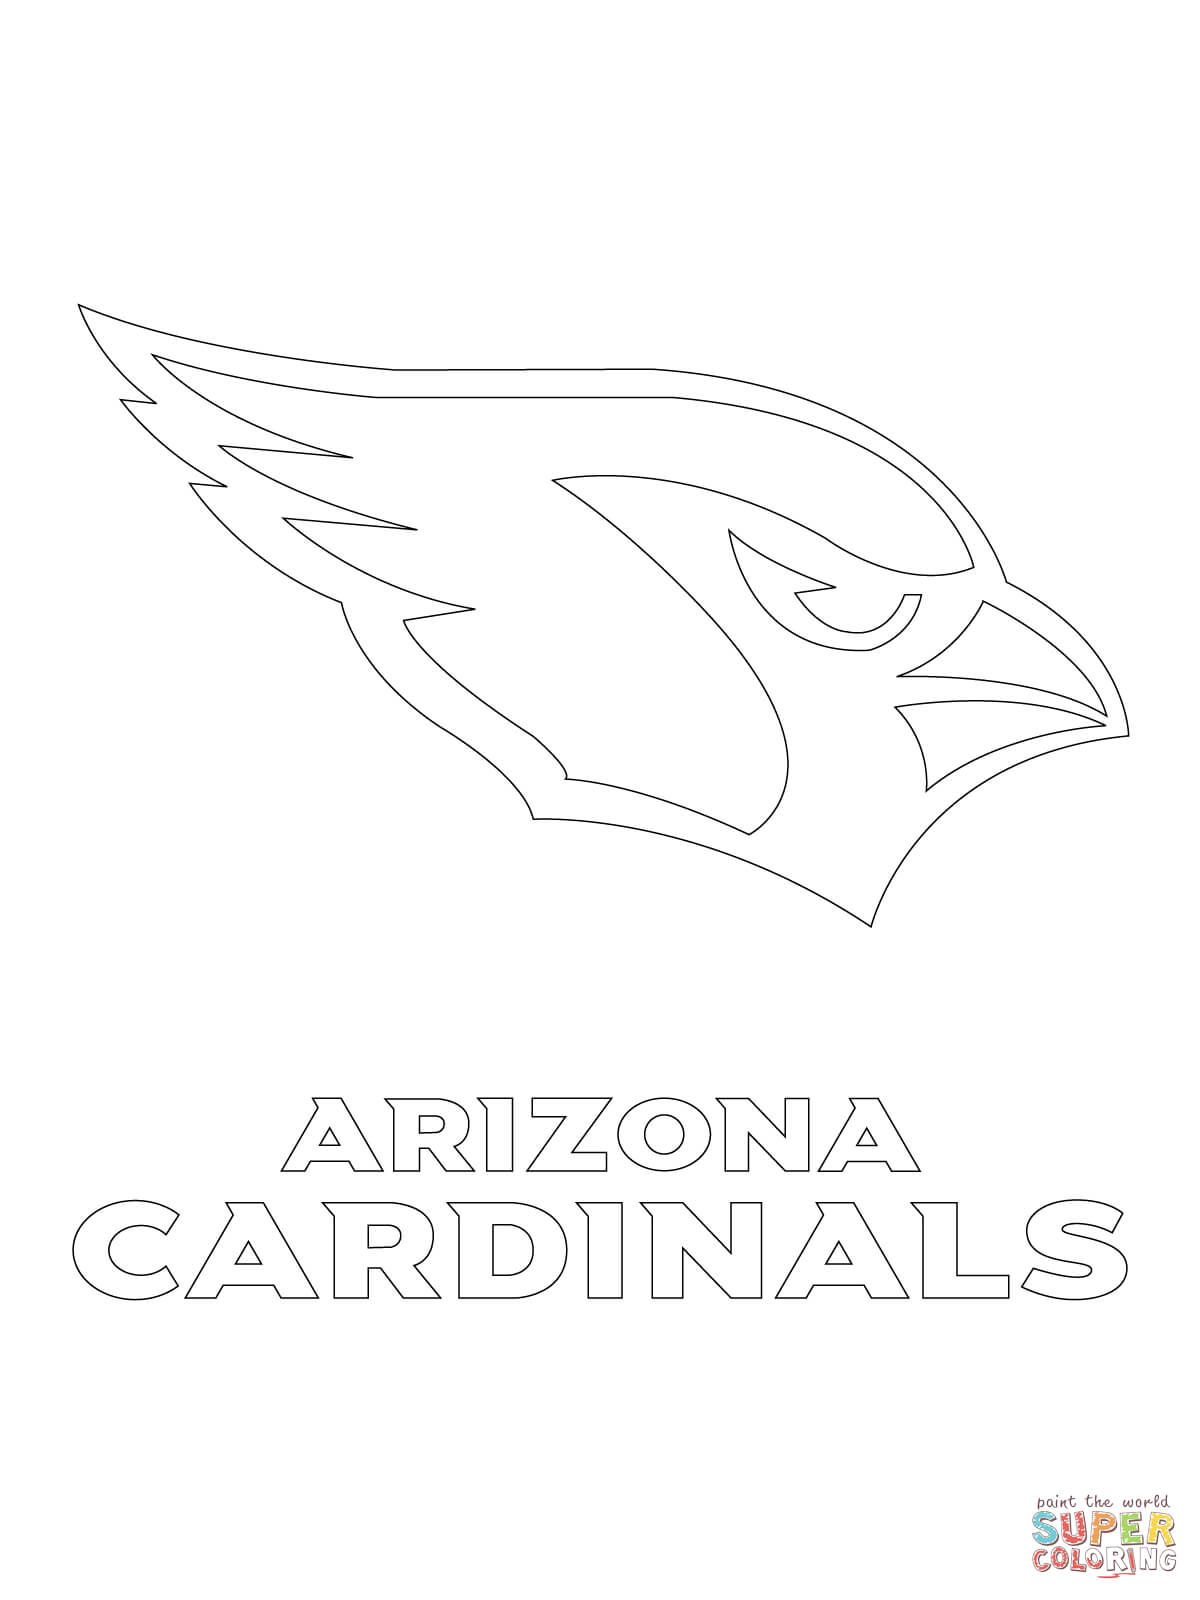 Arizona Cardinals Logo Coloring Page Free Printable Coloring